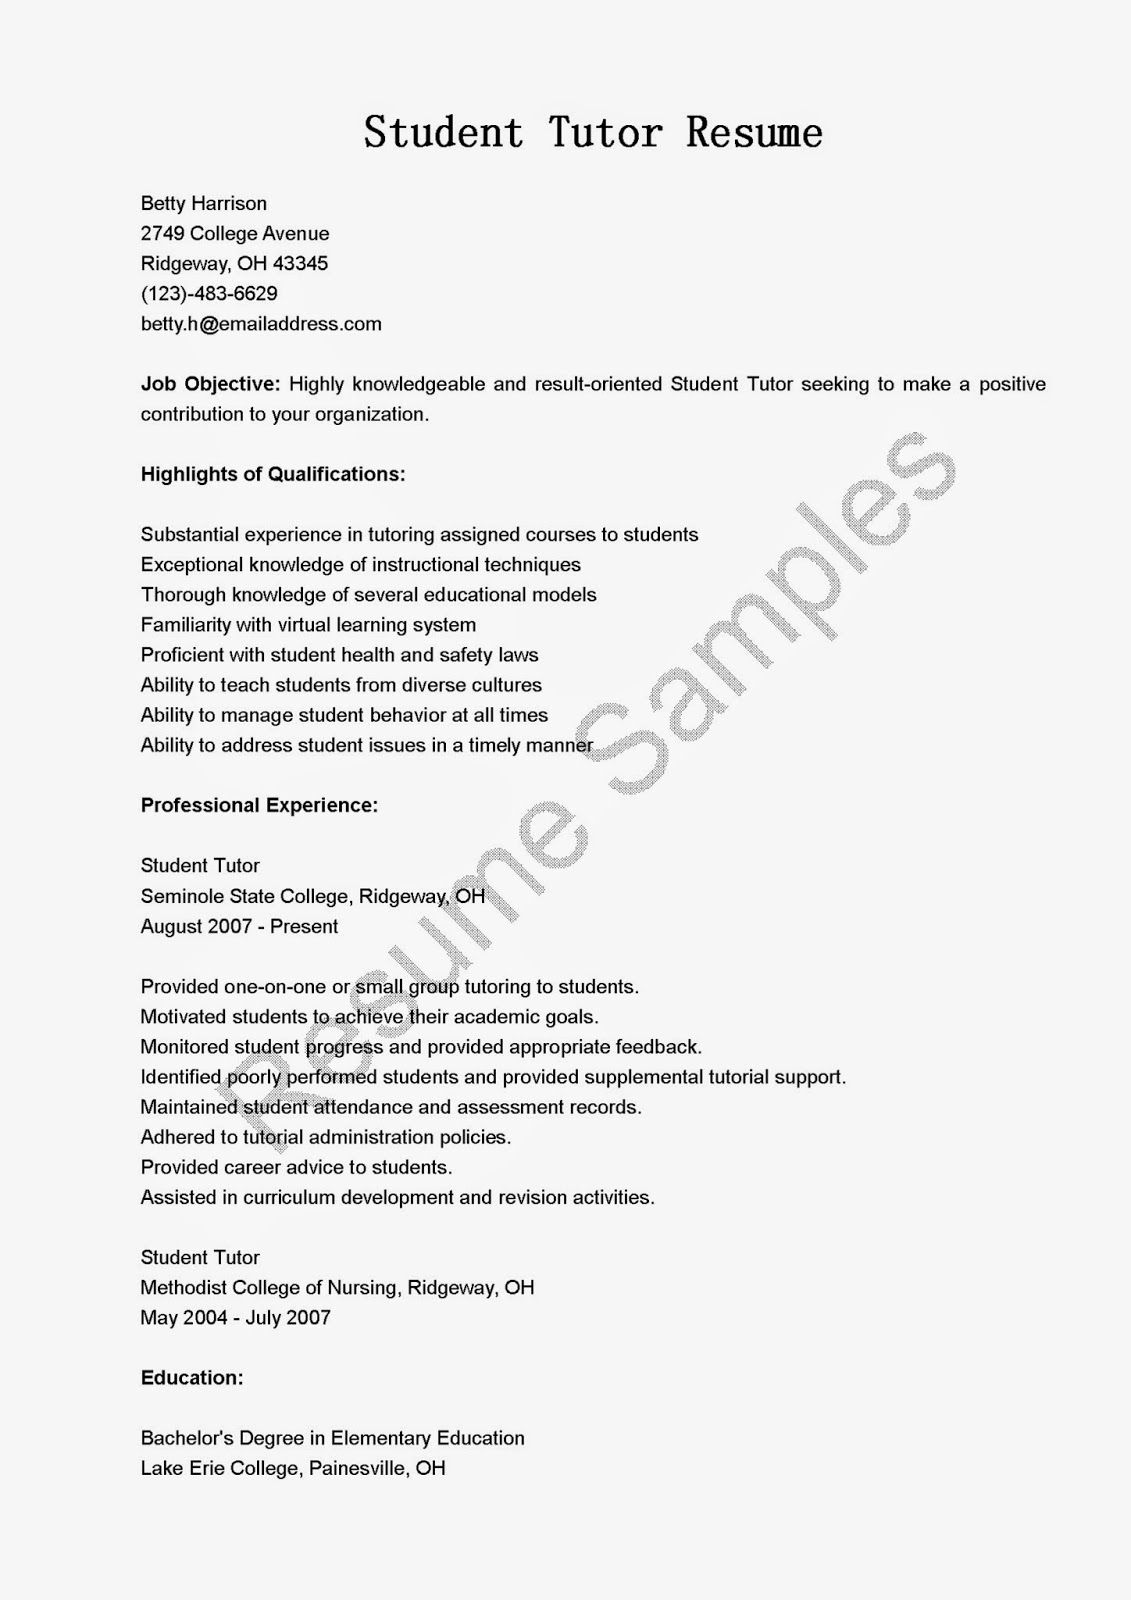 Beautiful Tutor Resume Template Free Samples Examples Format Lewesmr Resume Tutor  Resume Tutor Volunteer Tutor Resume Example